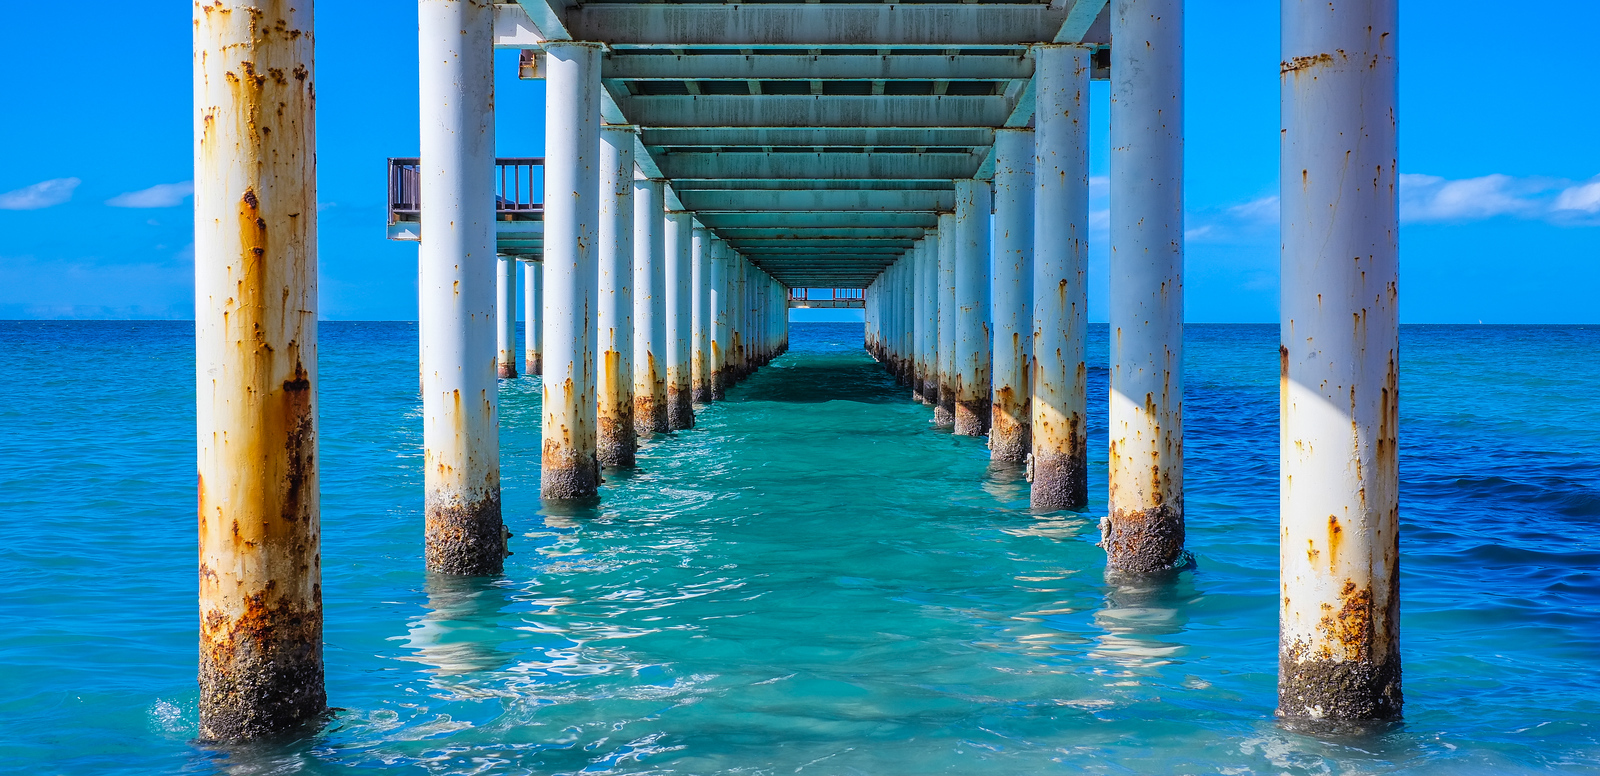 Under the Pier (Pano)